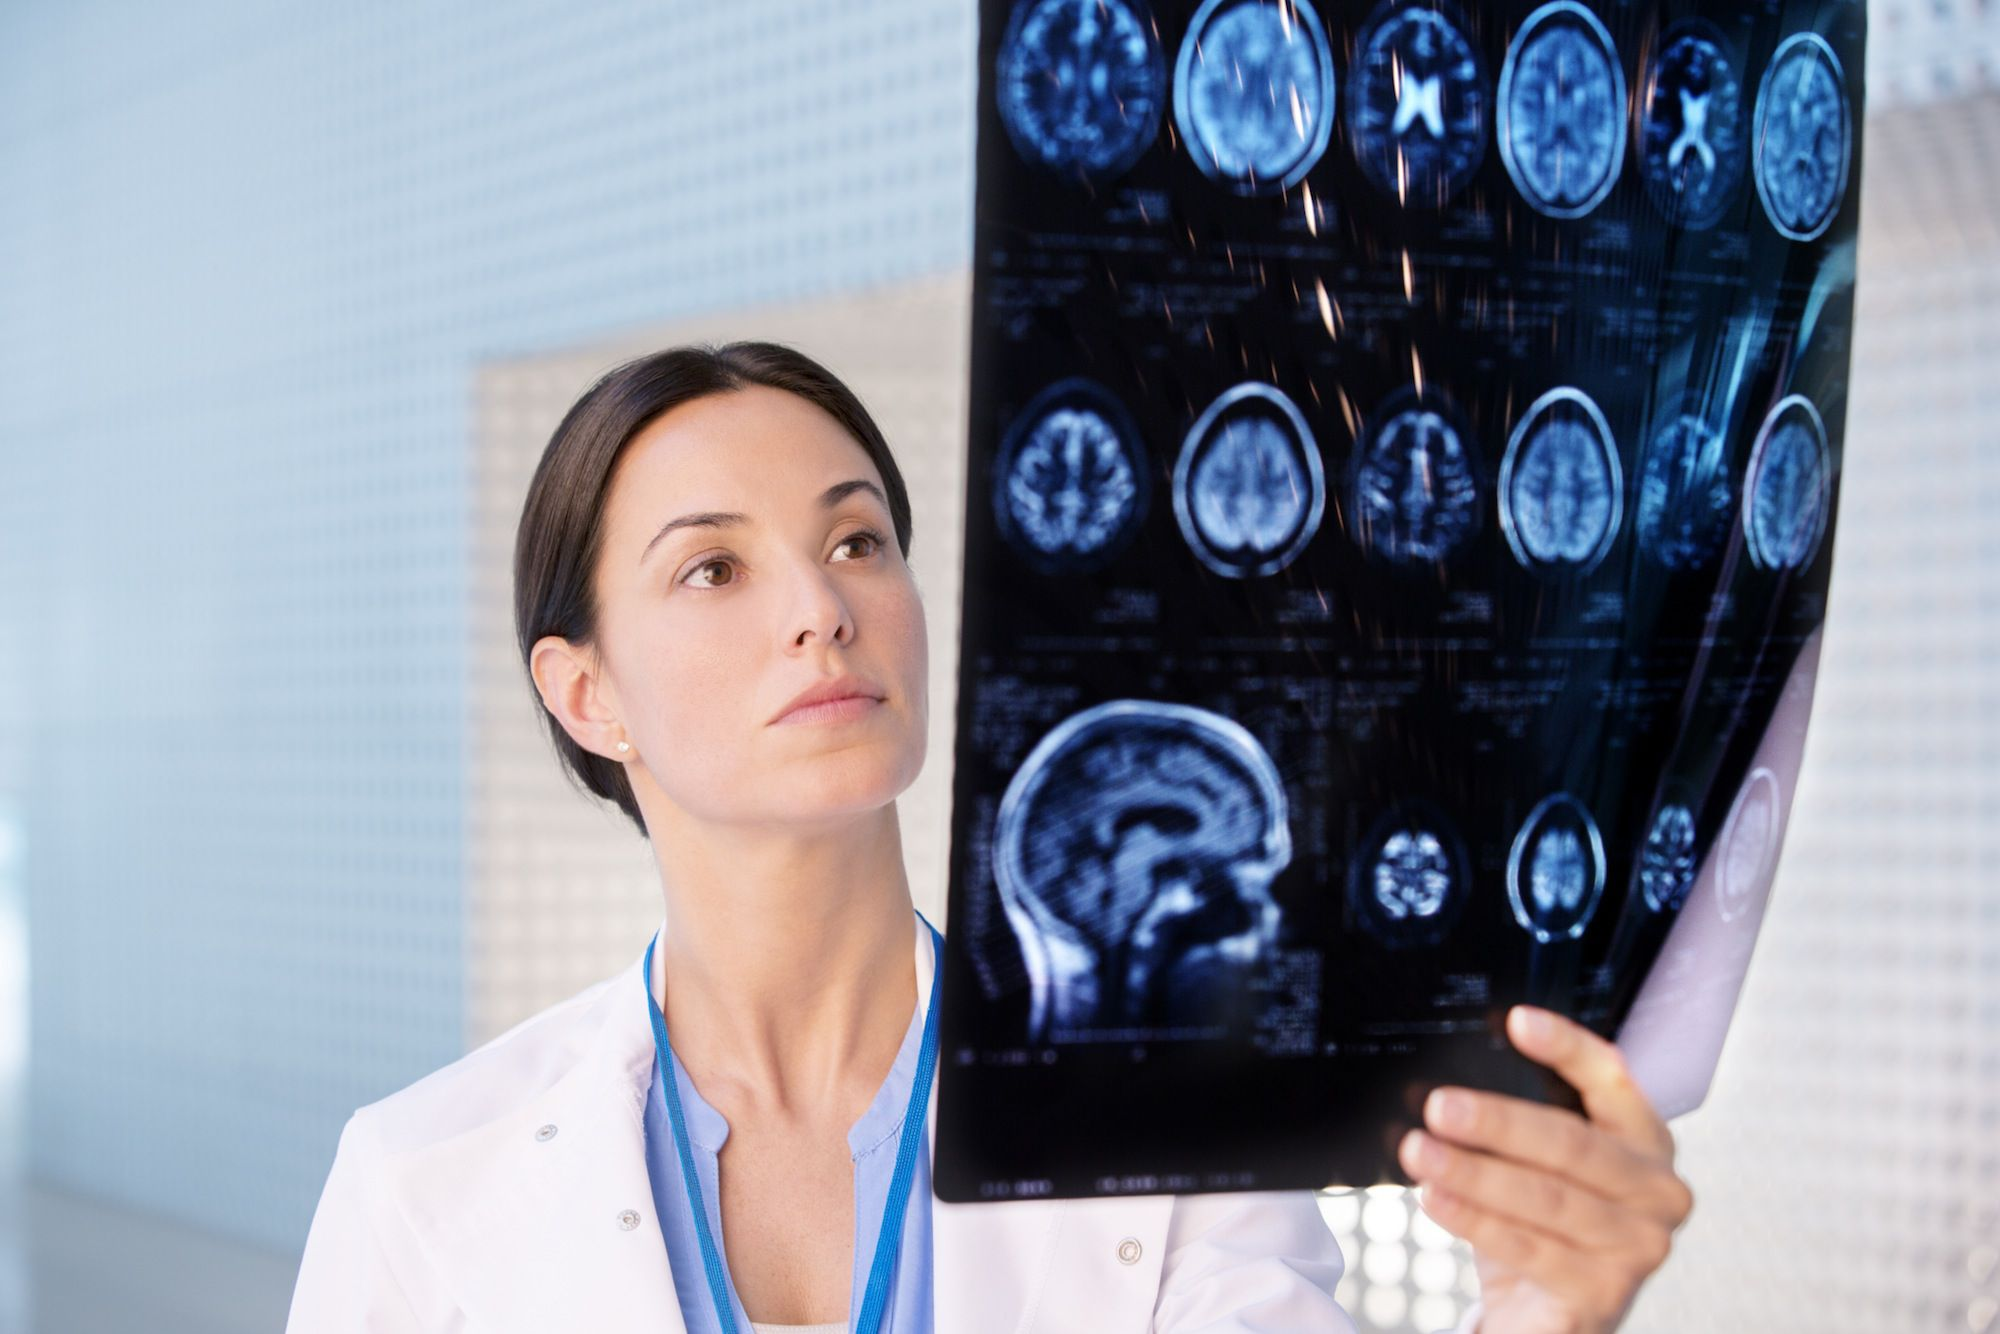 Neurologist: Expertise, Specialities, and Training